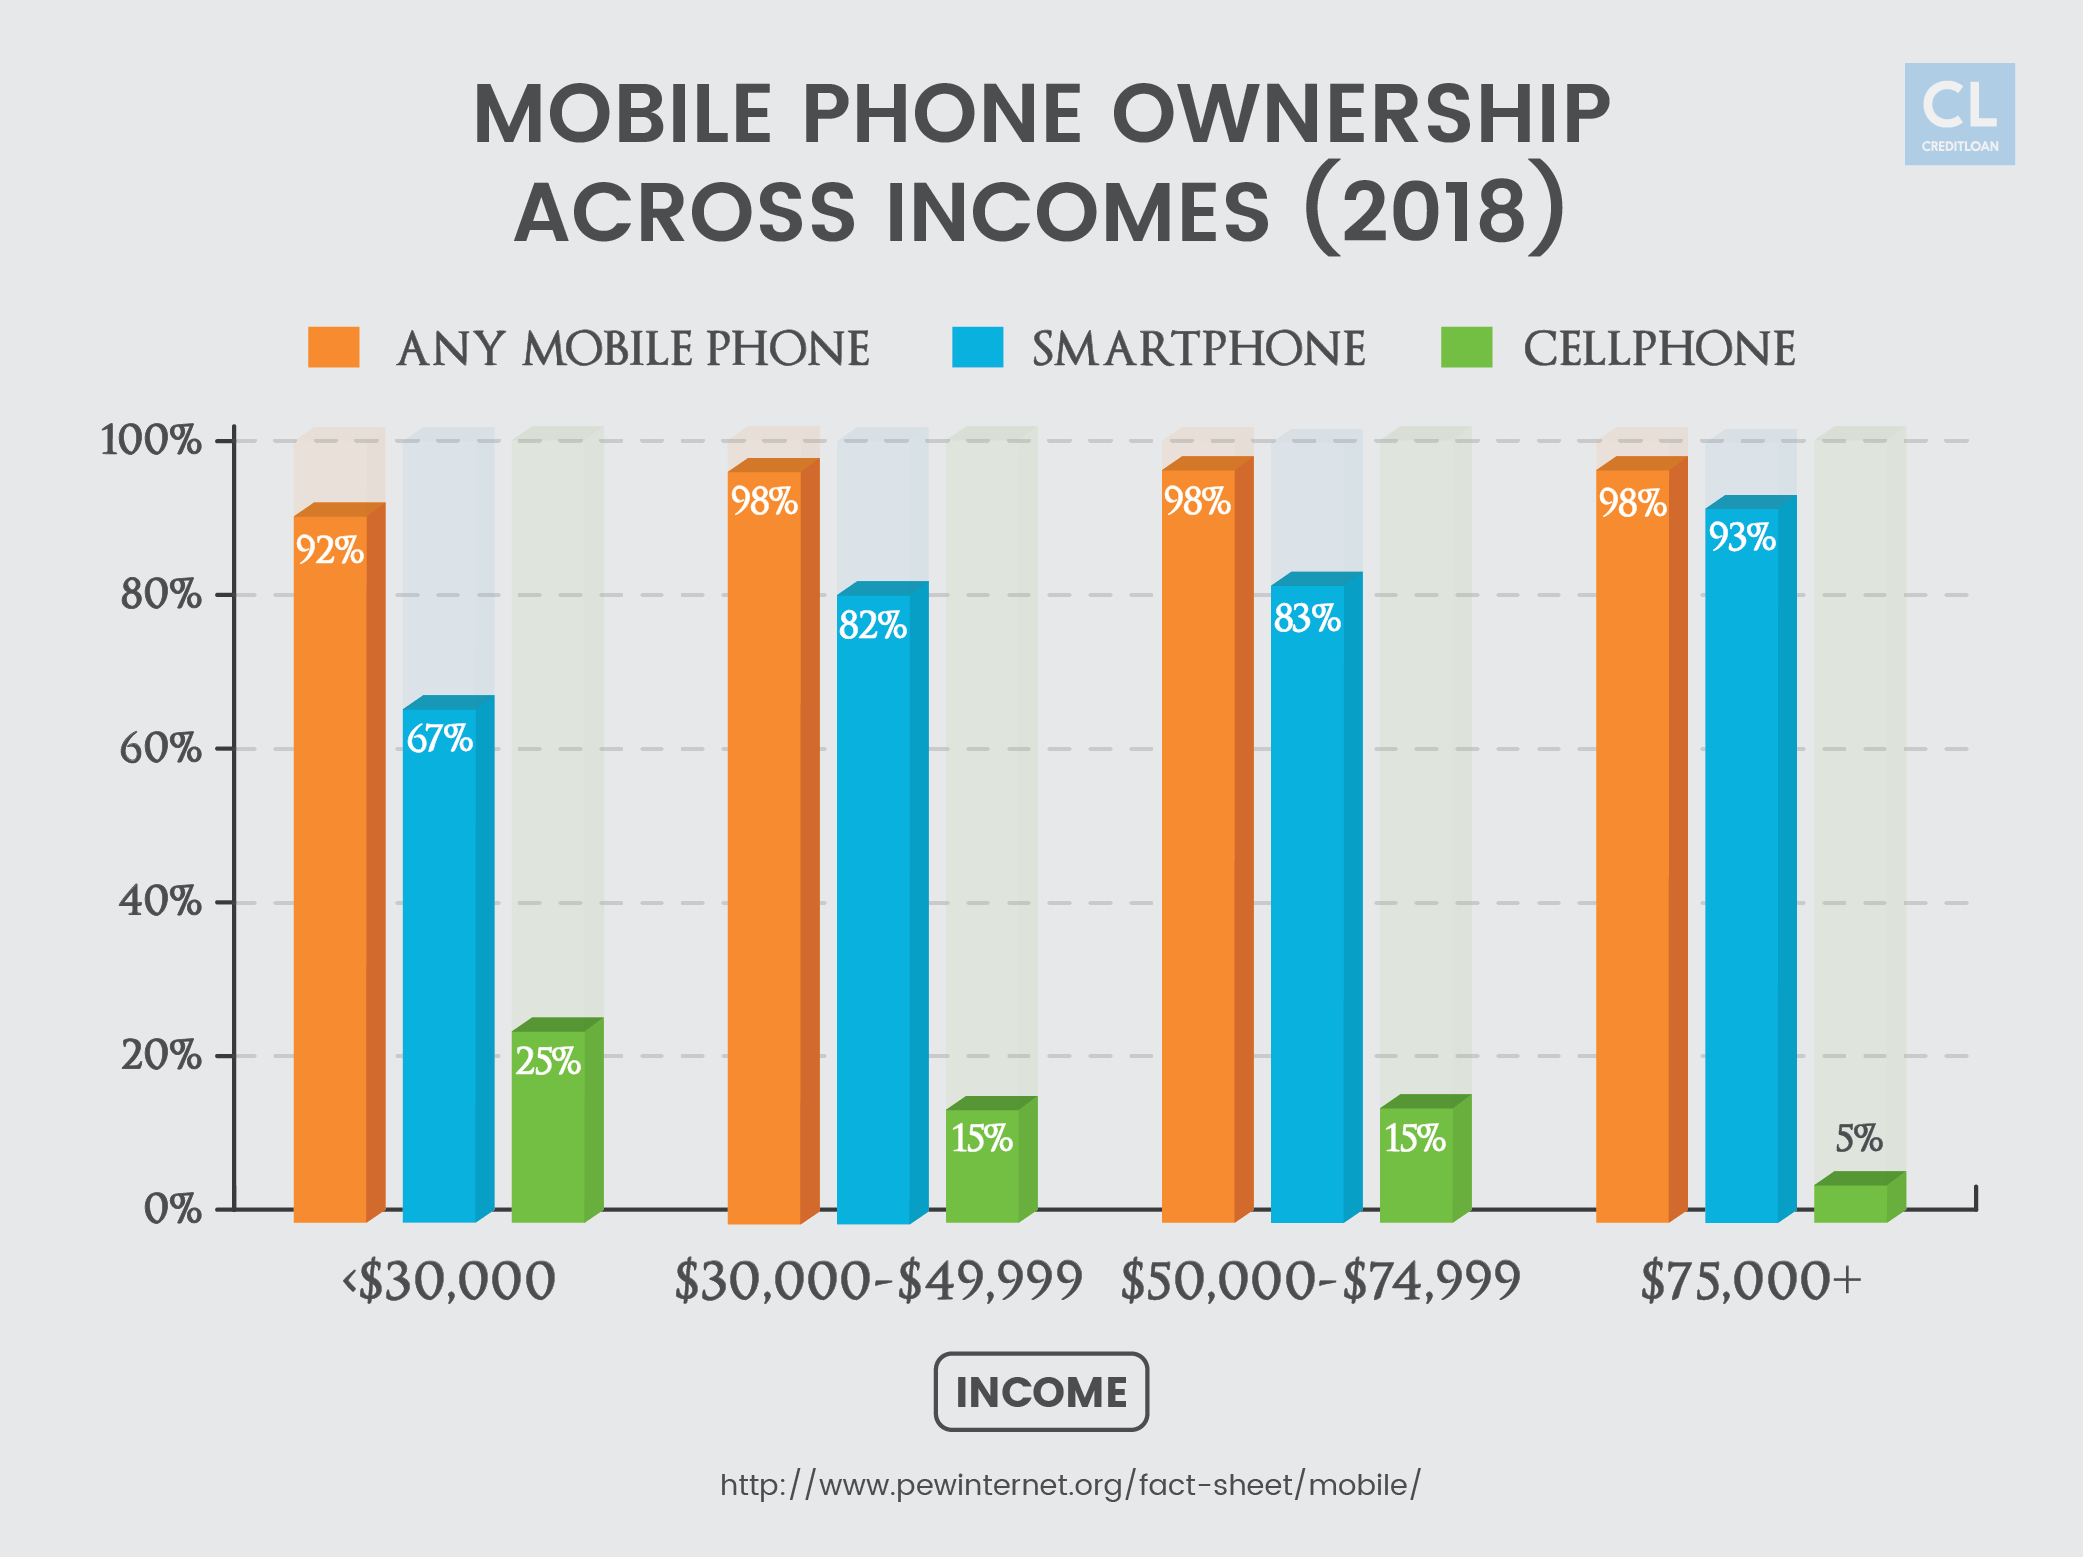 Mobile Phone Ownership Across Incomes in 2018